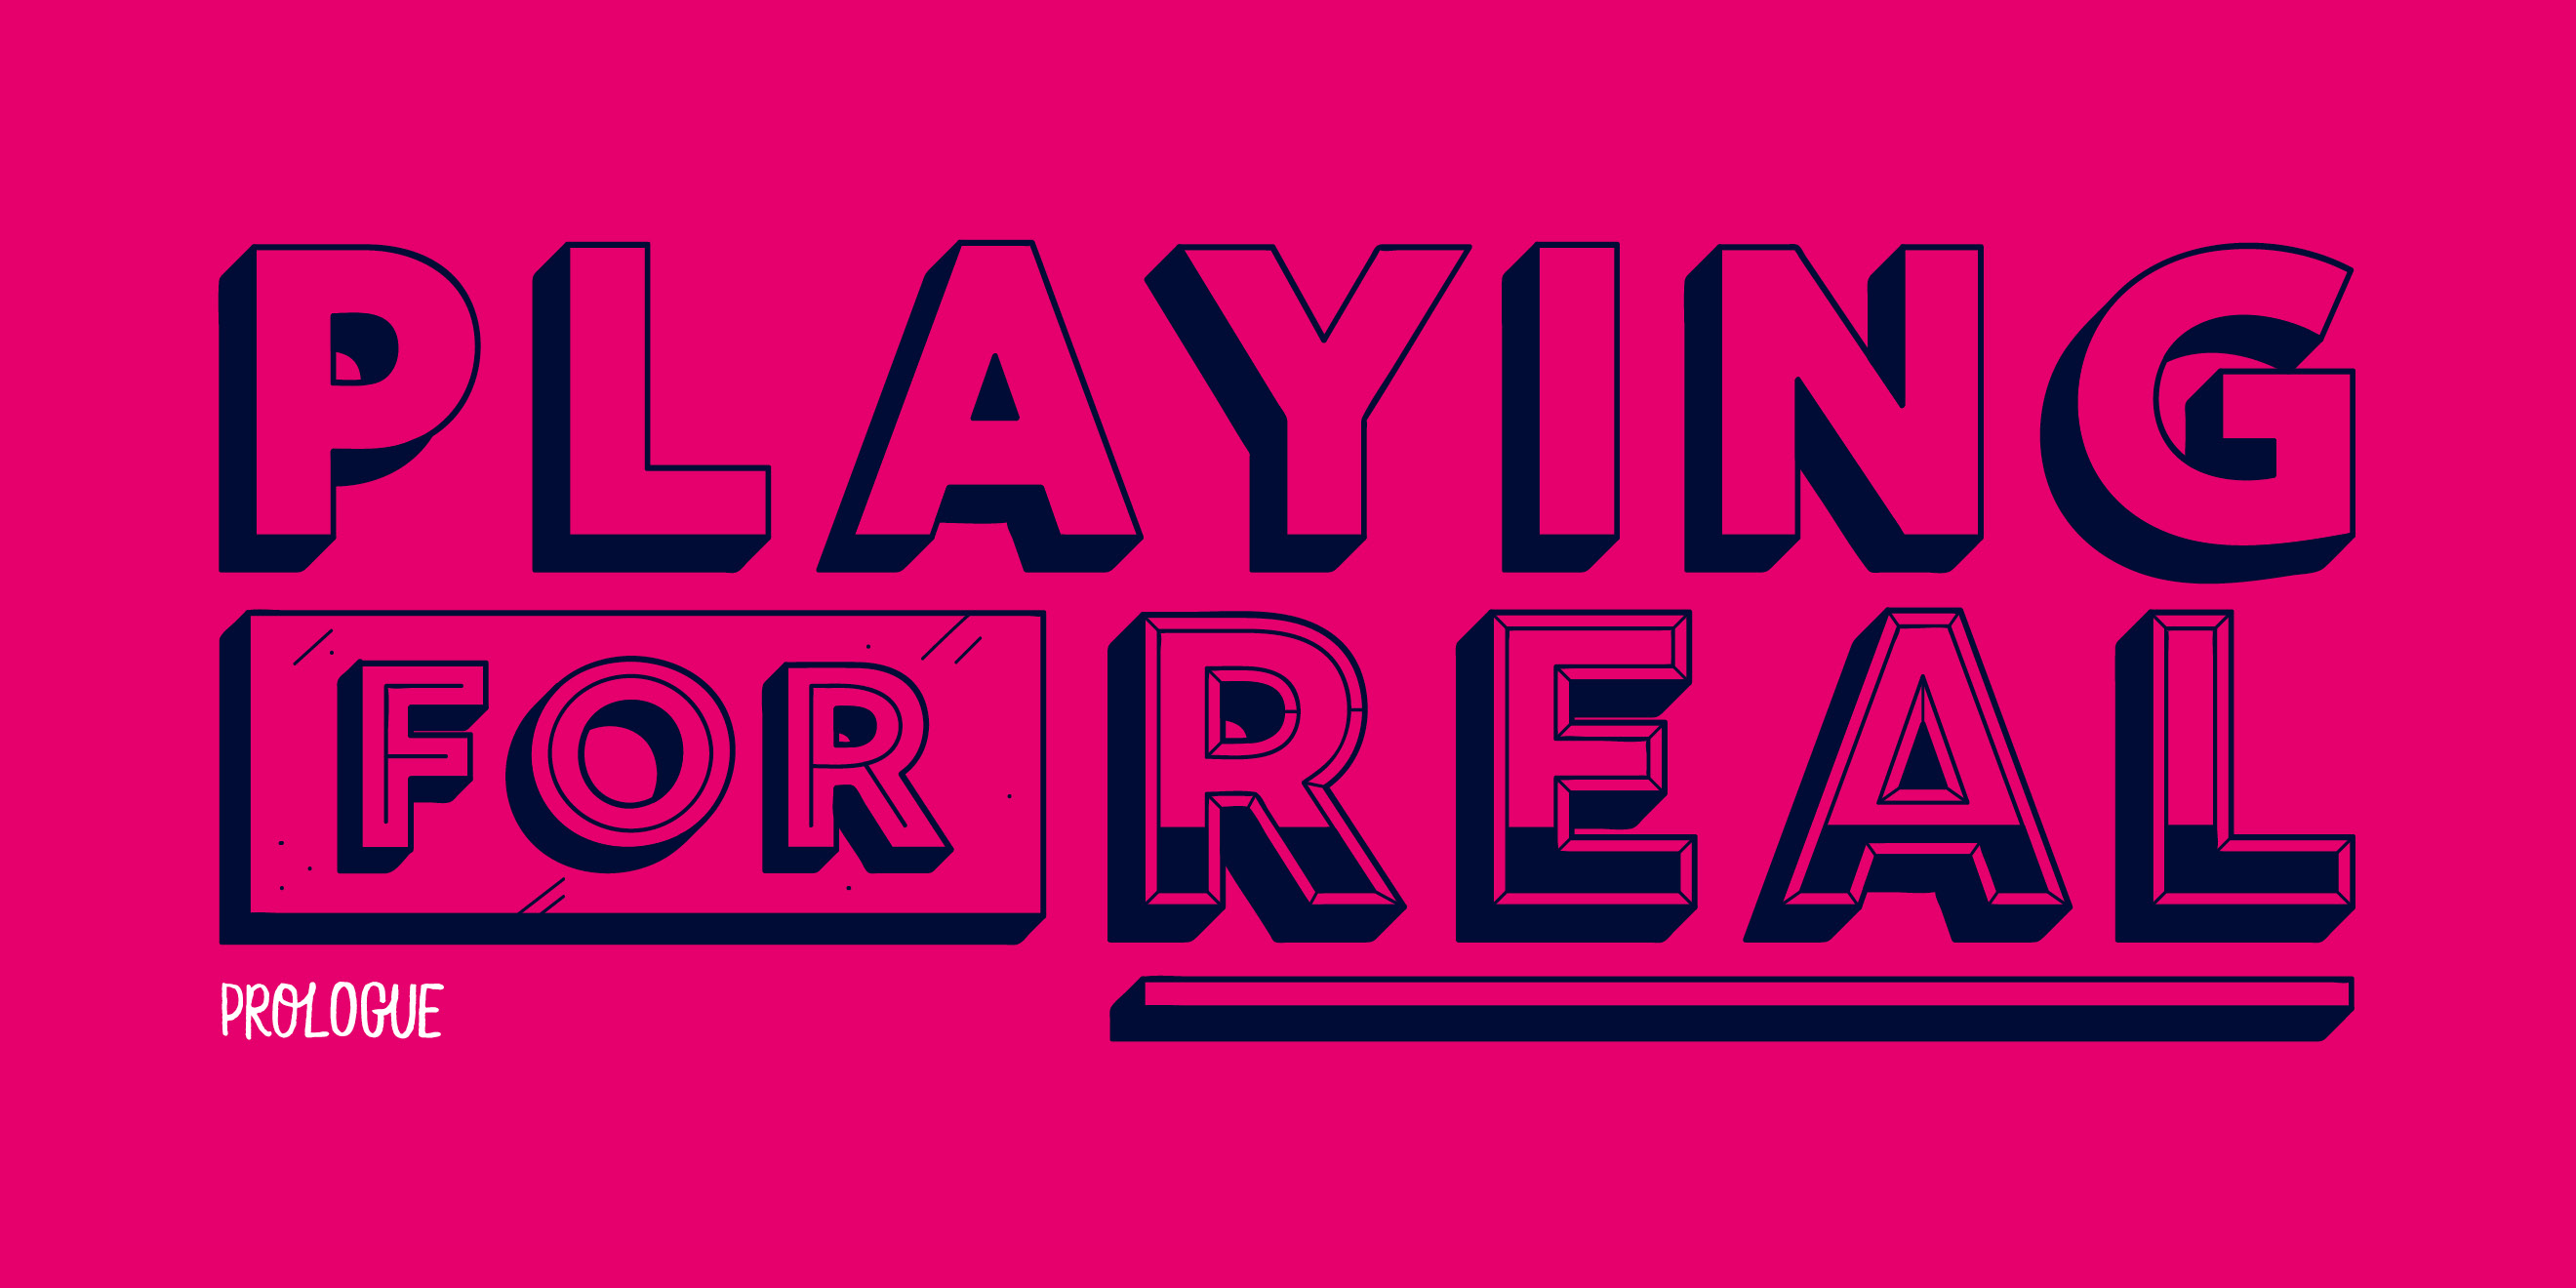 'Playing for Real' - title typography design for 'The Way To Design'